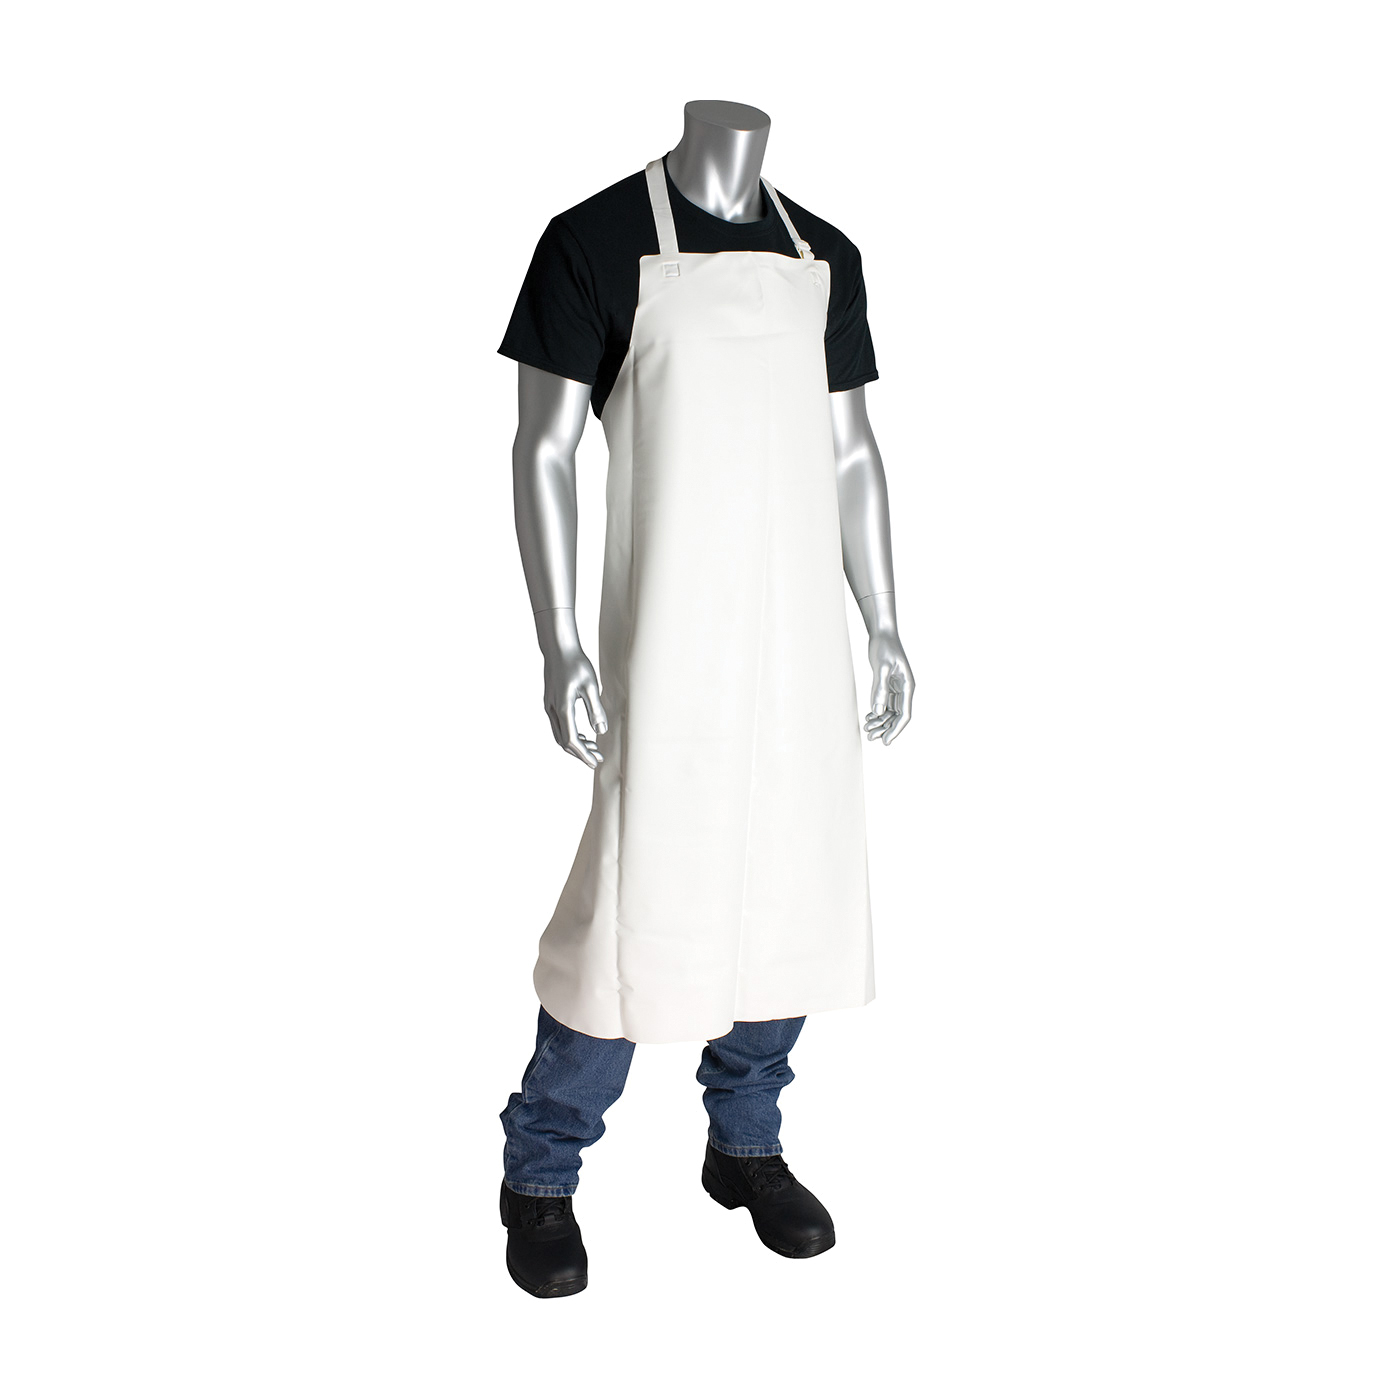 PIP® 200-08001 Vinyl Pot Sink Bib Apron, Polyethylene, 35 in L x 33 in W, Resists: Abrasion, Puncture, Chemical, Fats, Oil and Grease